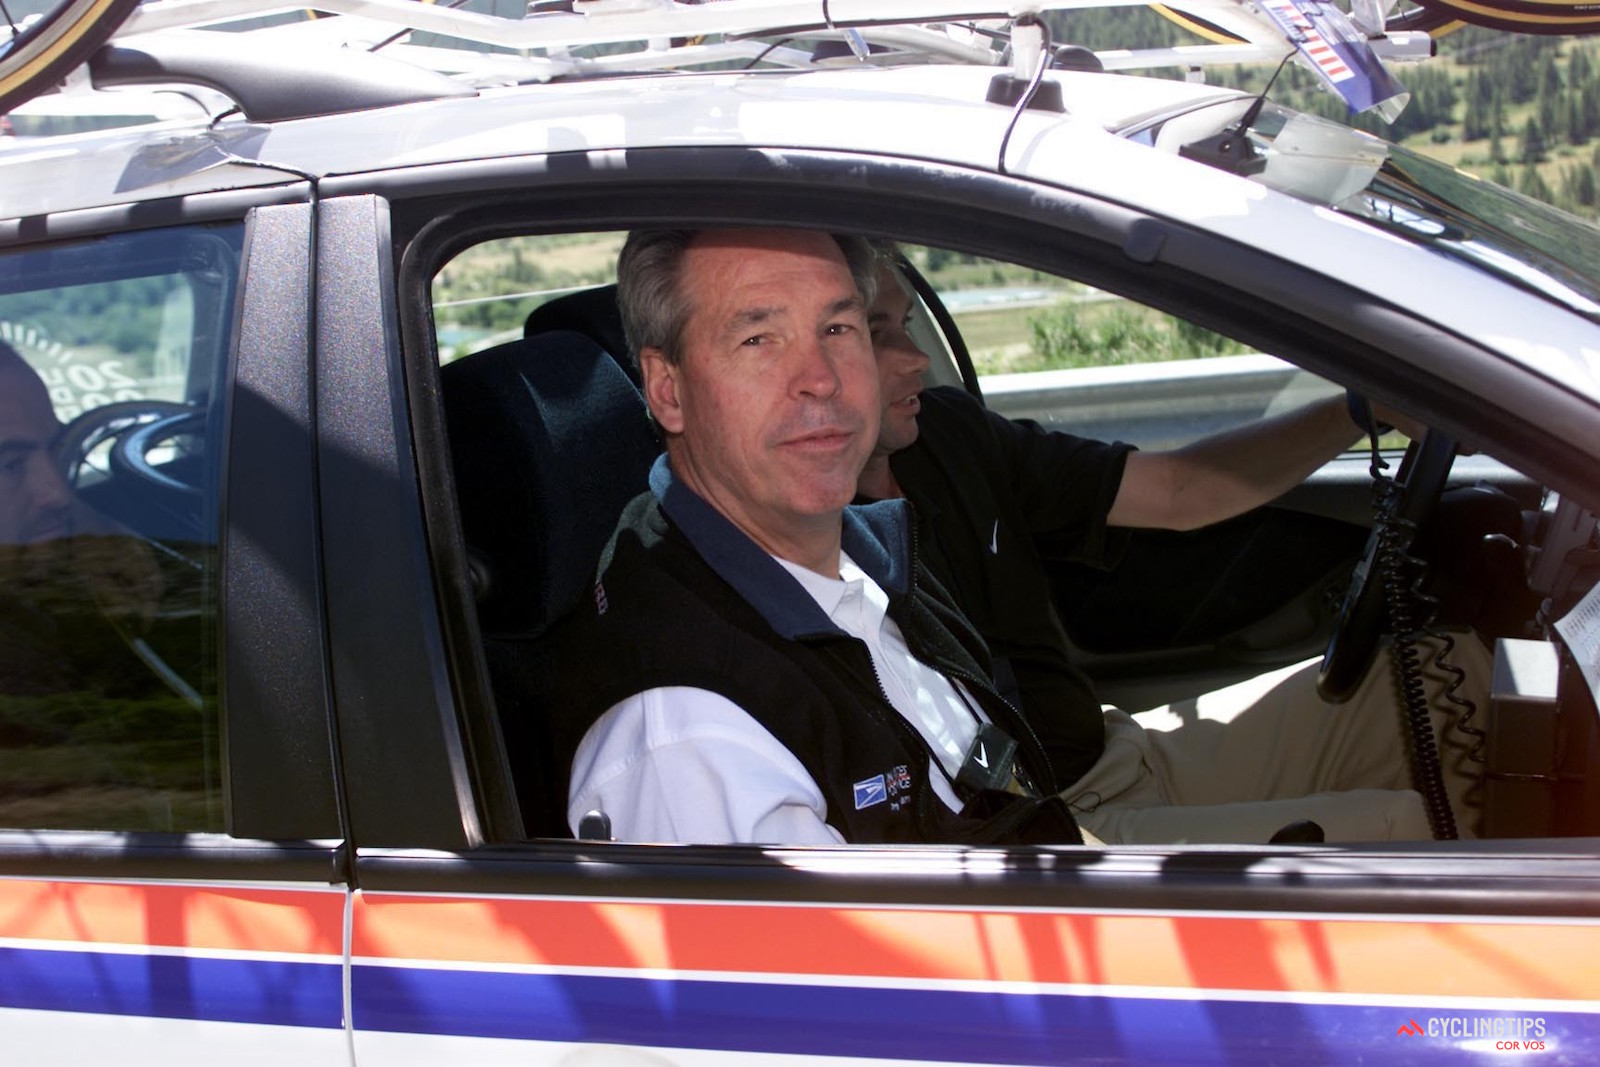 Thomas Weisel in the U.S. Postal Service team car at the 2000 Tour de France. Photo: Cor Vos.